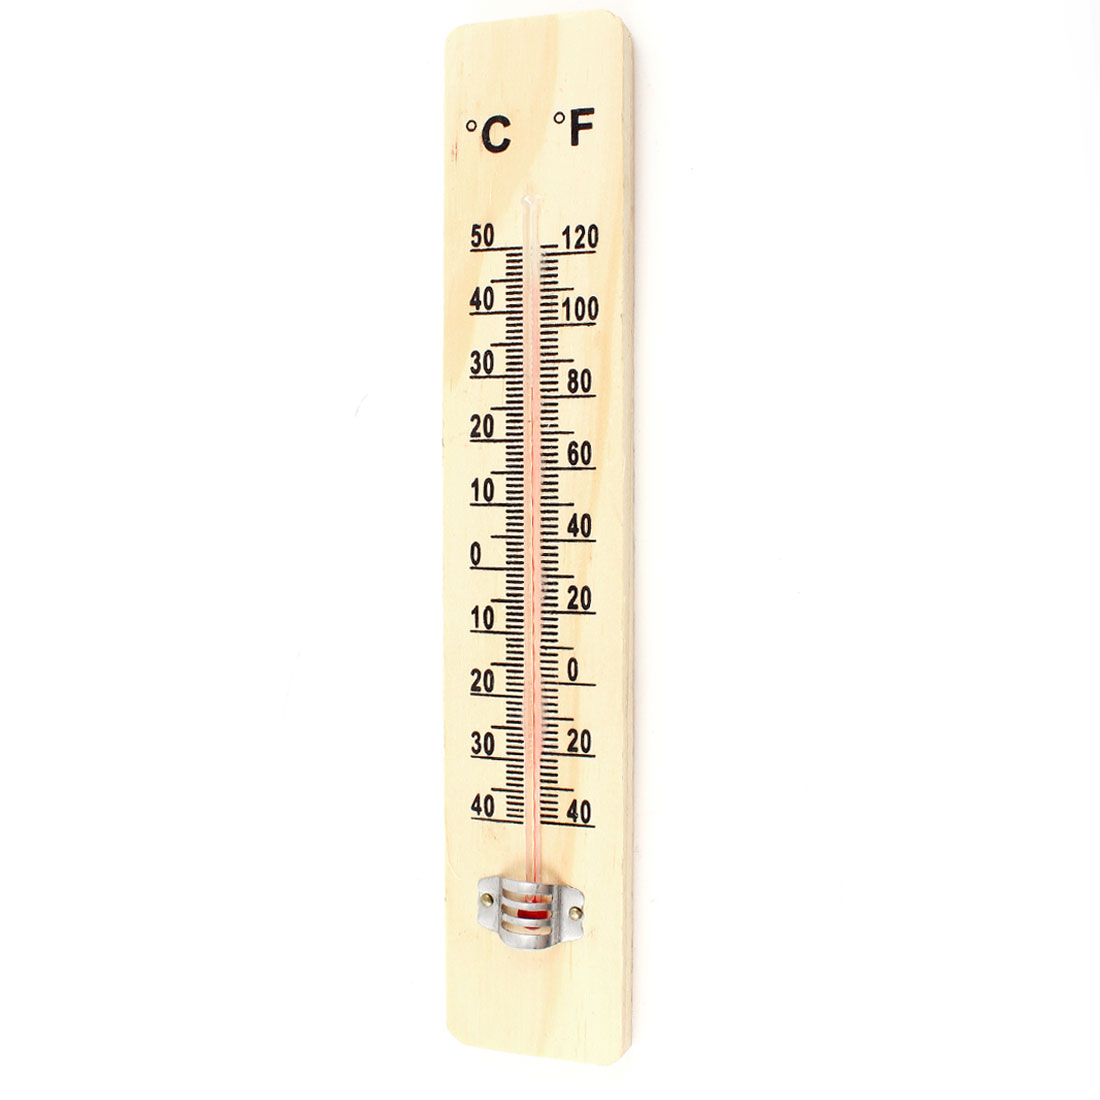 -40 to 50 Centigrade Plastic Temperature Gauge Thermometer Beige